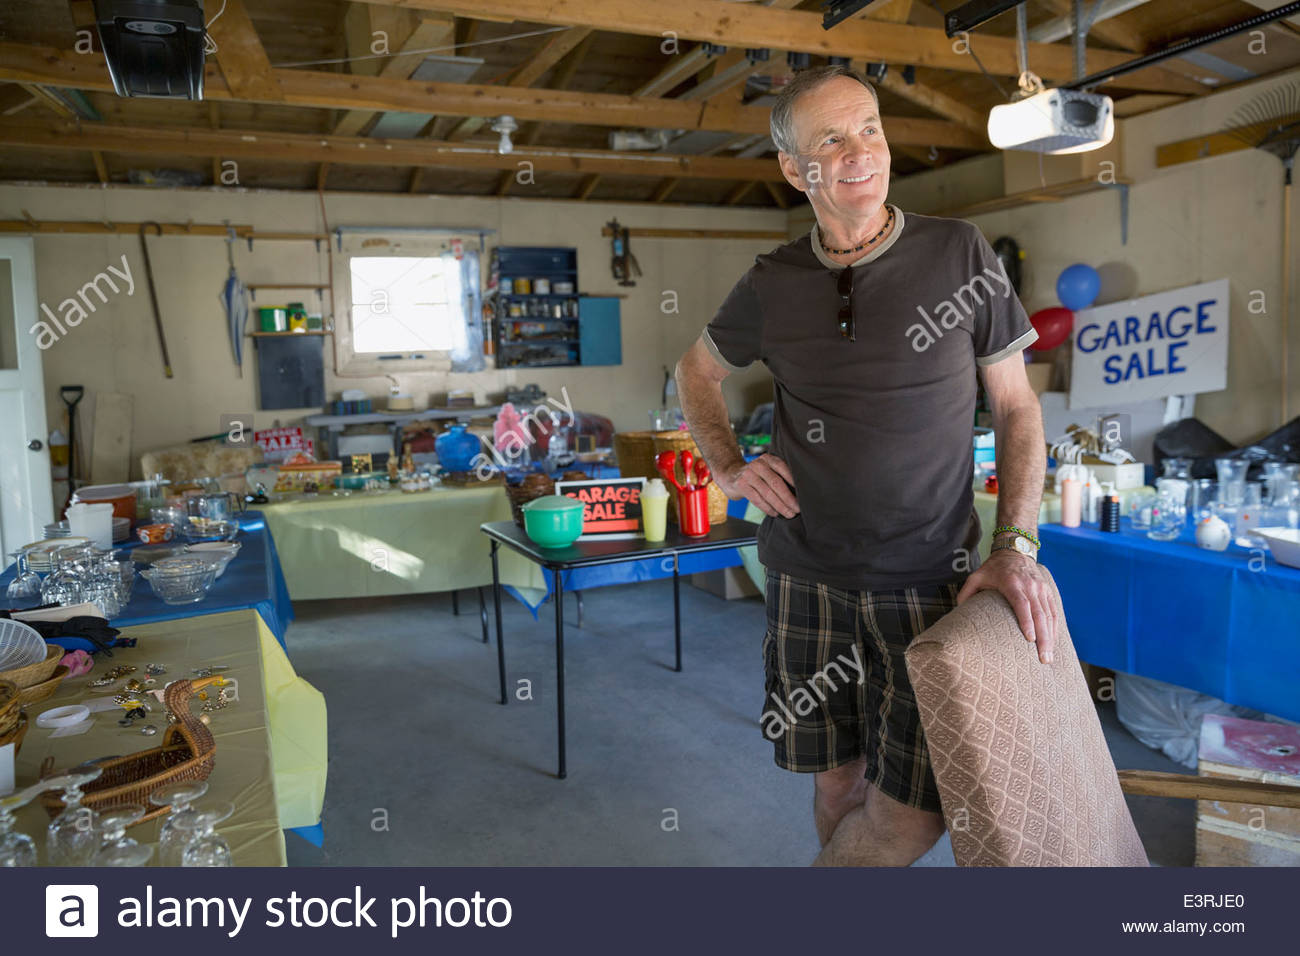 Confident man at garage sale - Stock Image